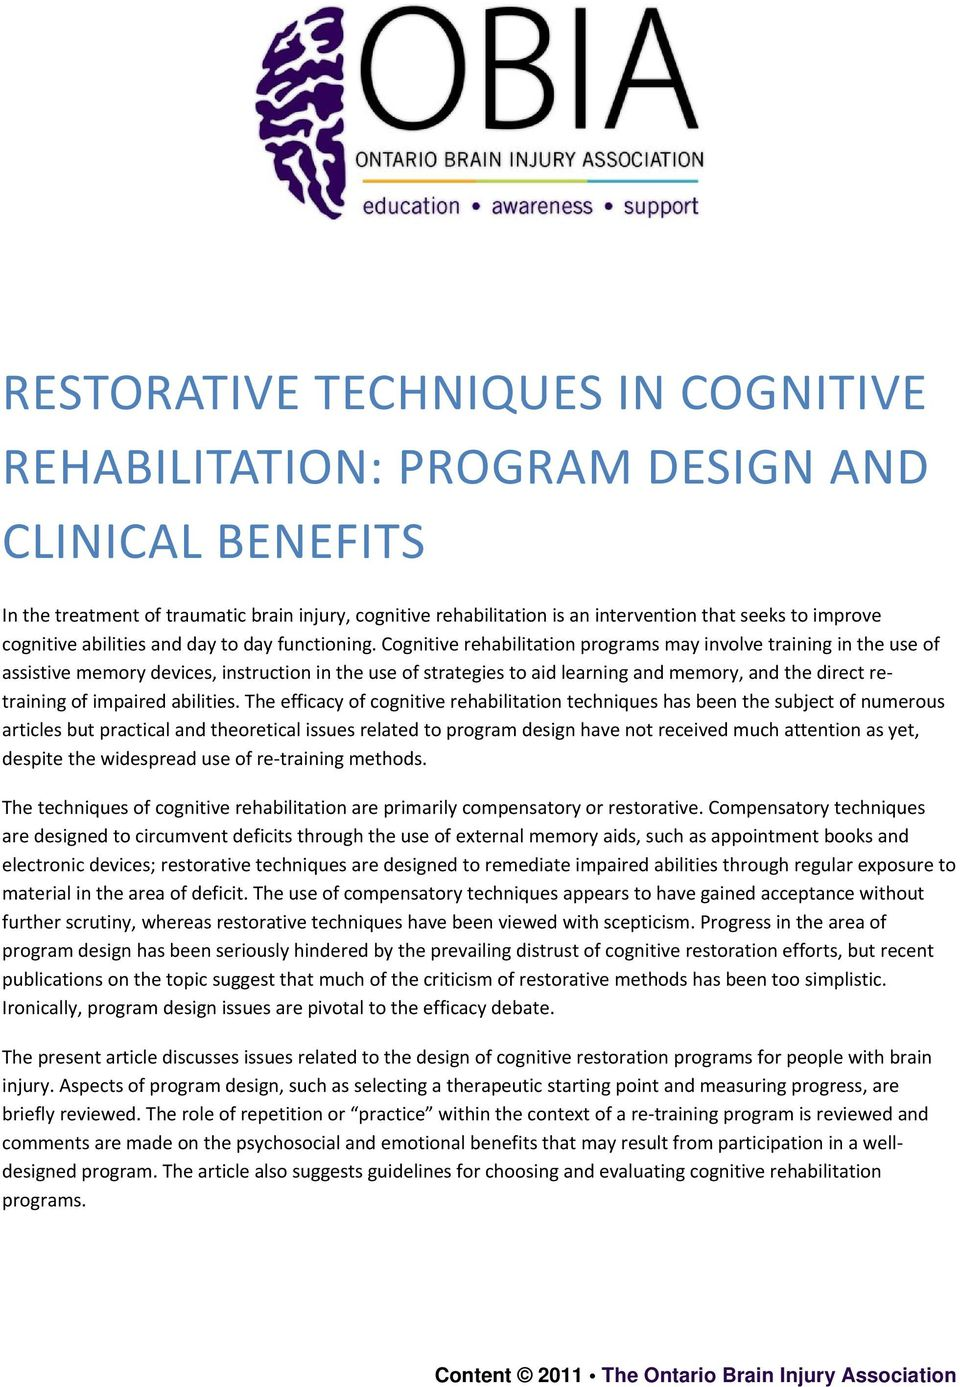 Cognitive rehabilitation programs may involve training in the use of assistive memory devices, instruction in the use of strategies to aid learning and memory, and the direct retraining of impaired